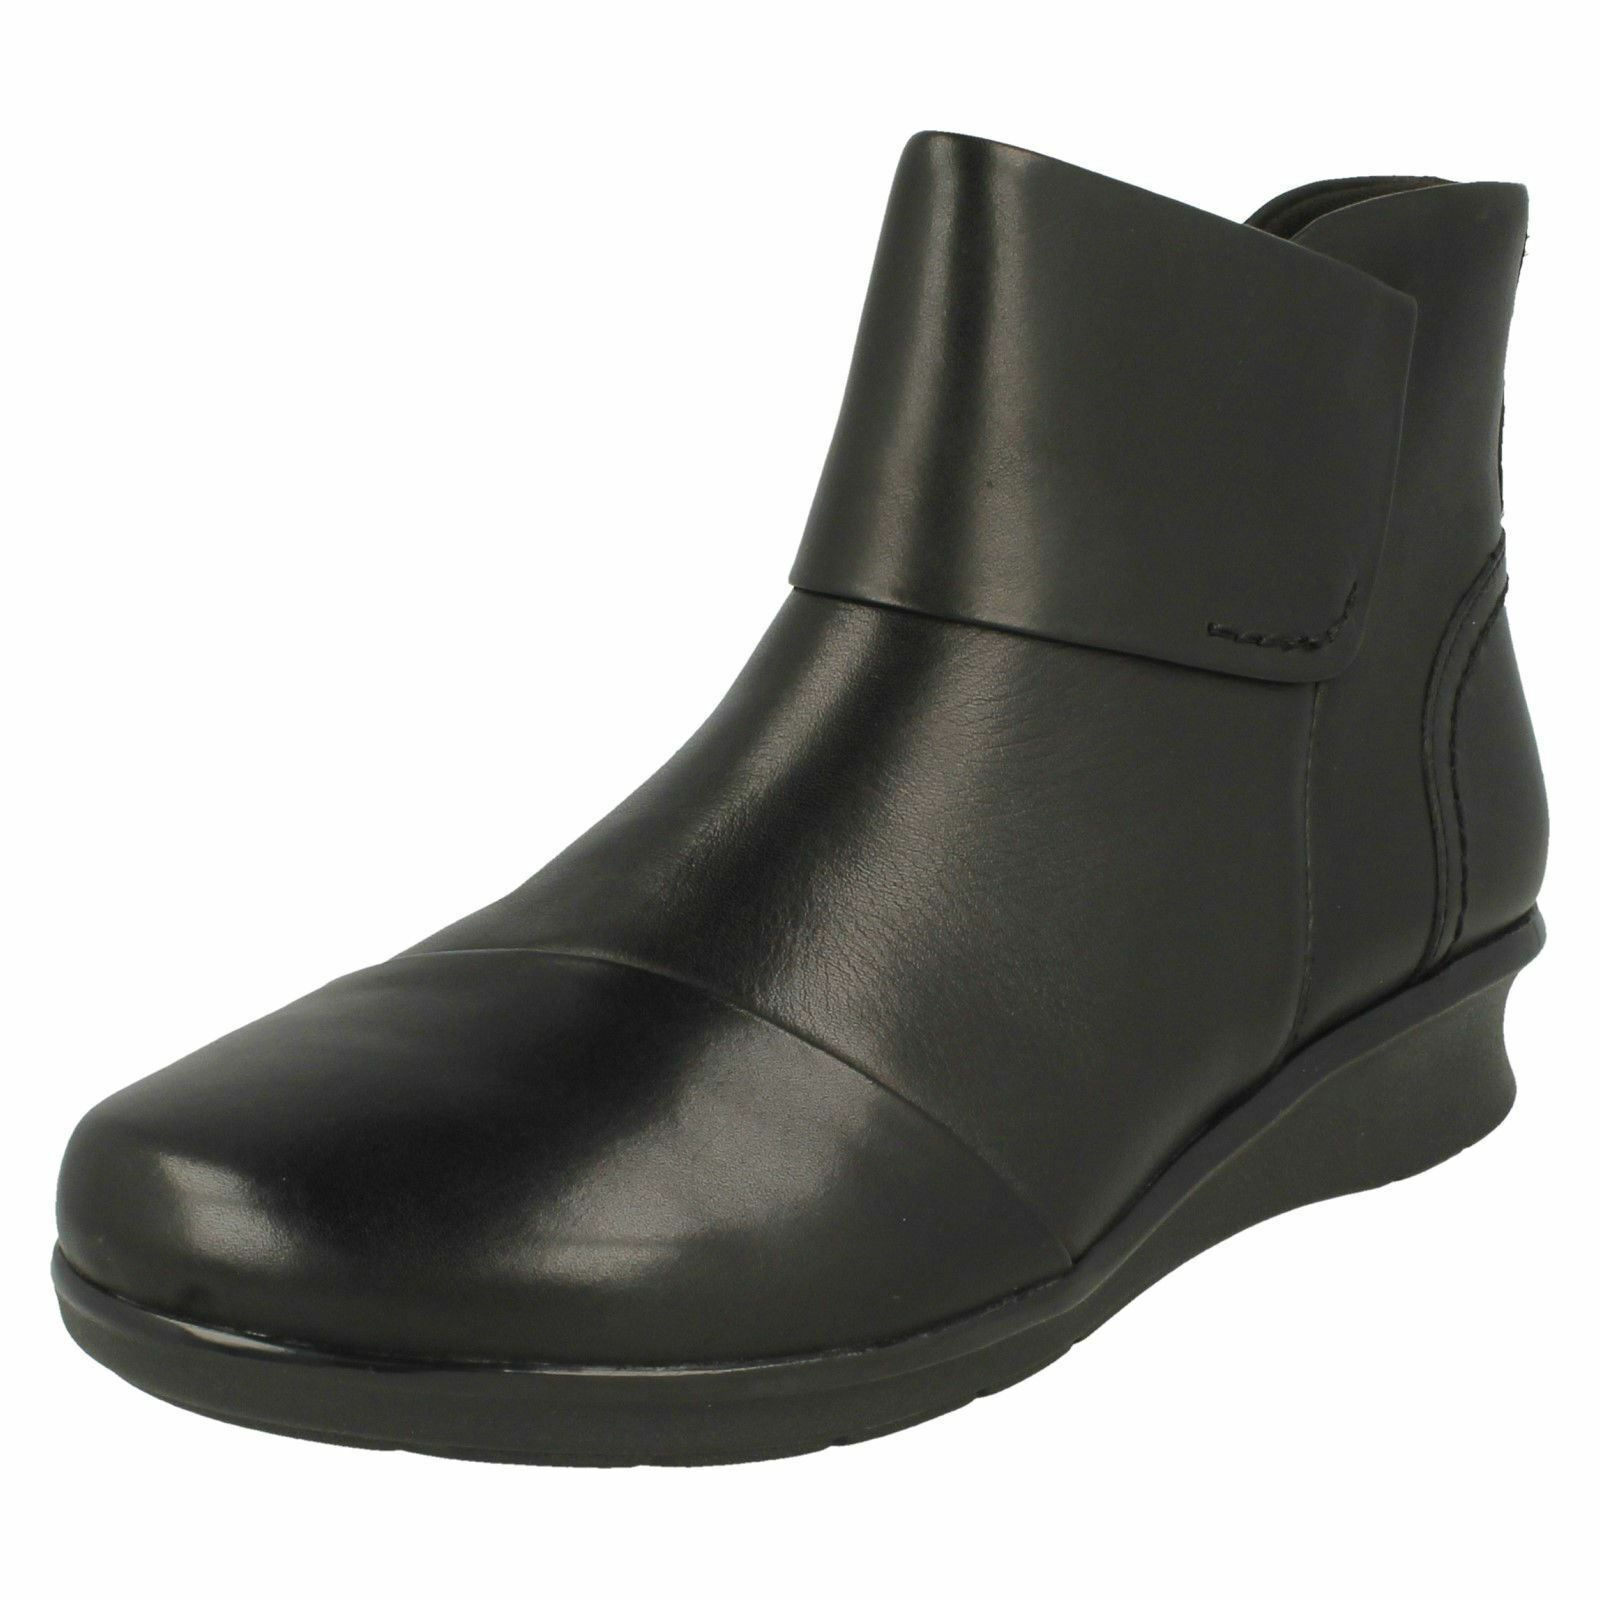 Ladies Clarks Ankle Boots - 'Hope Track'